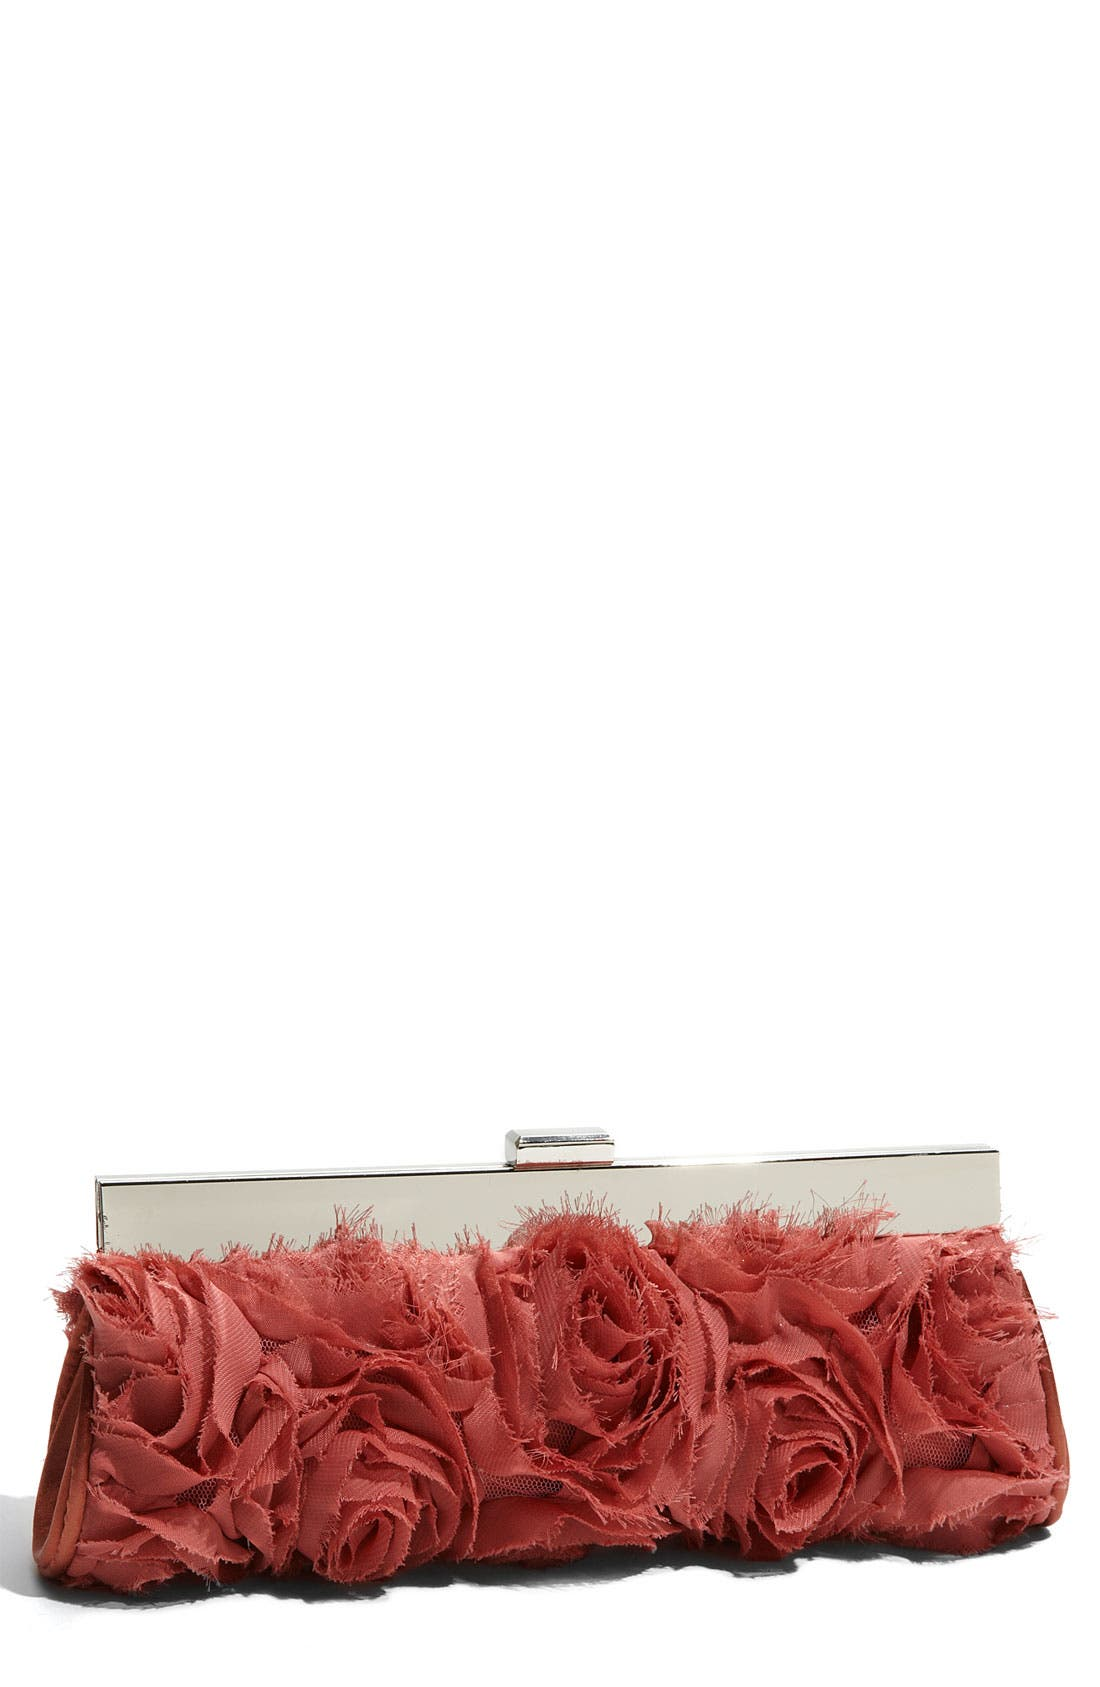 Alternate Image 1 Selected - Expressions NYC 'Rose' Frame Clutch